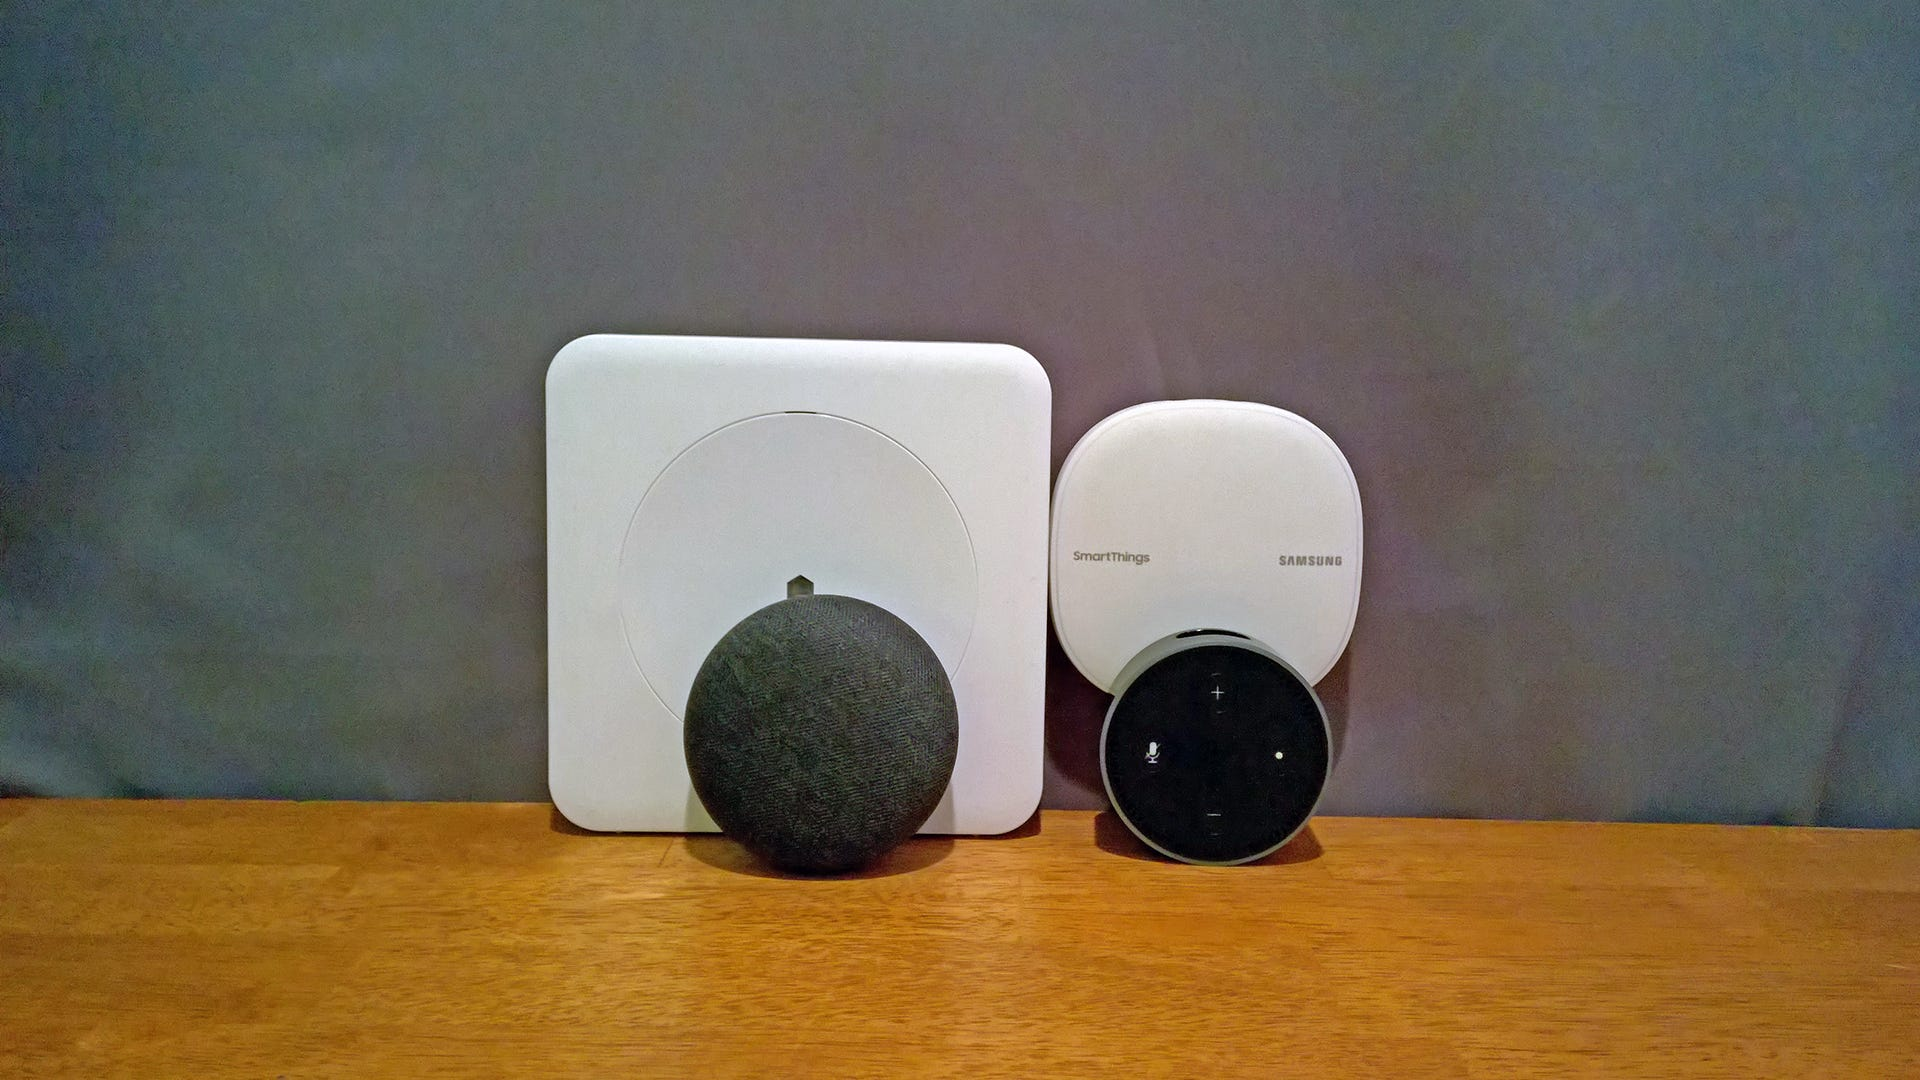 A Nest mini and Echo dot in front of a Wink and SmartThings hub